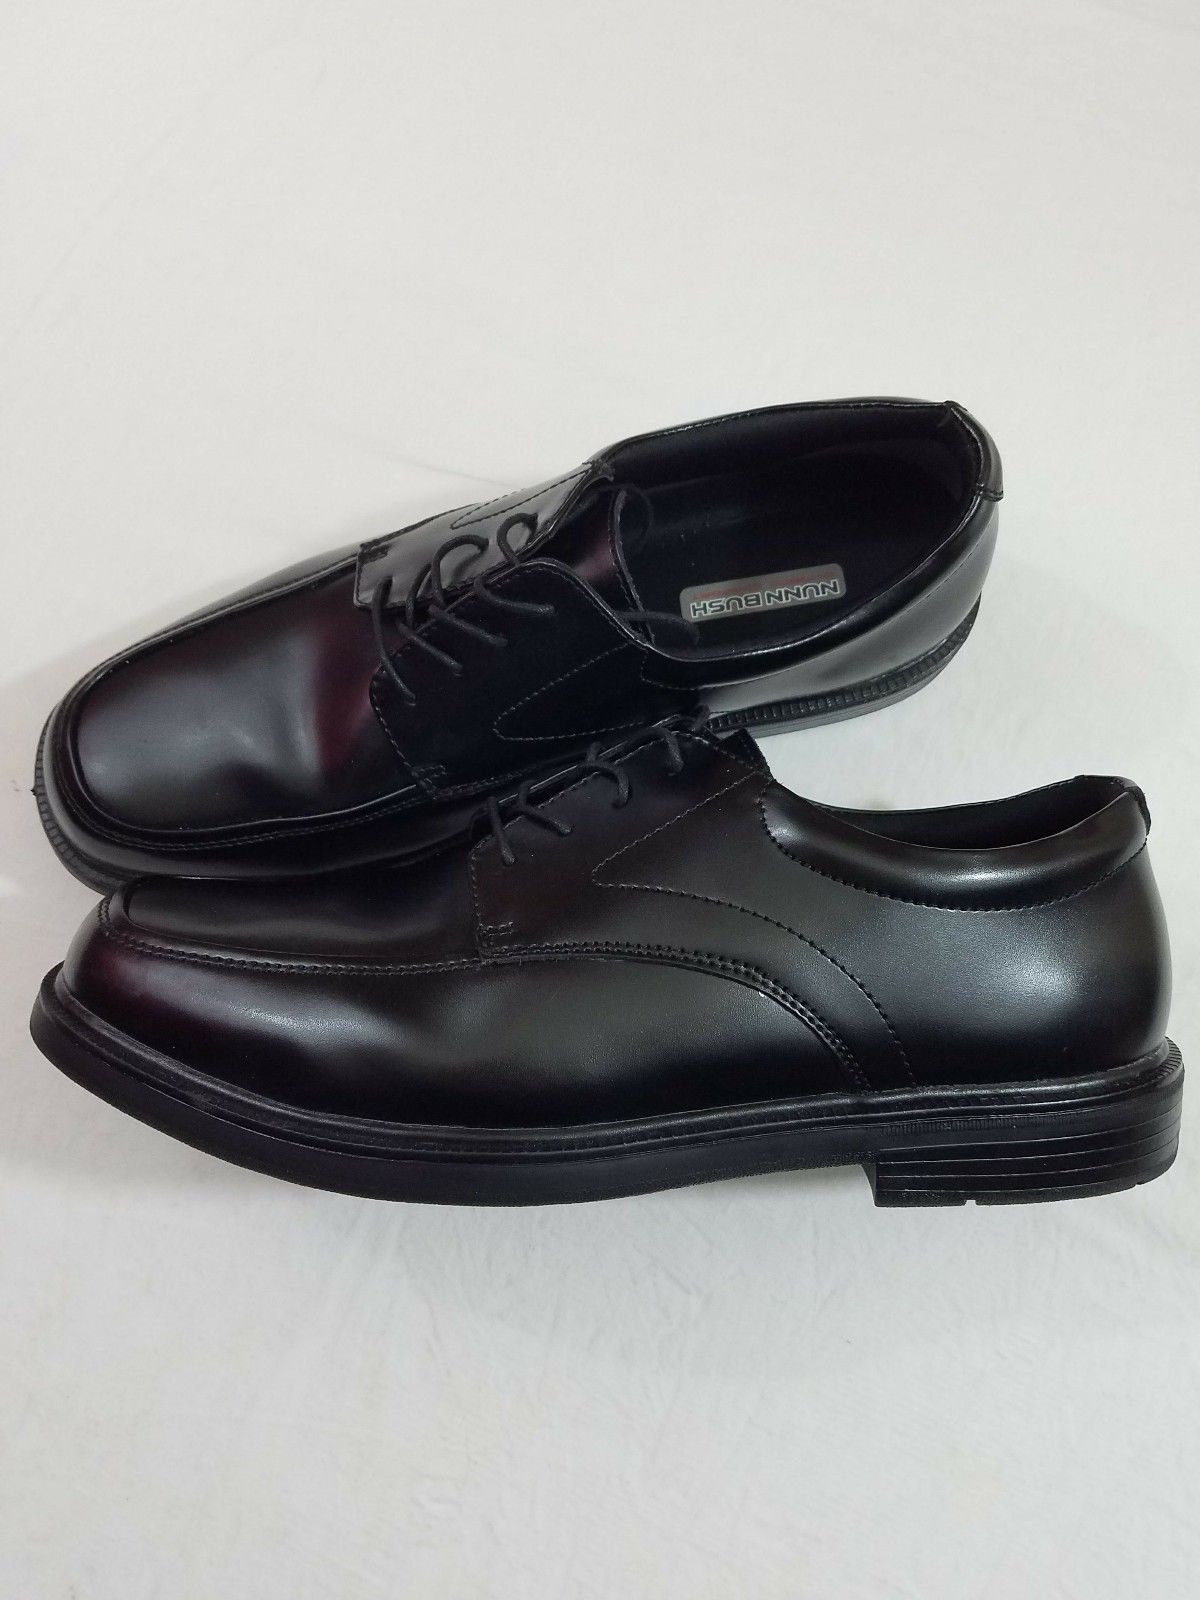 eeb9724d1ce1 ... Nunn Bush Mens Shoes Trenton Black Lace Up Oxford Size 12M ...